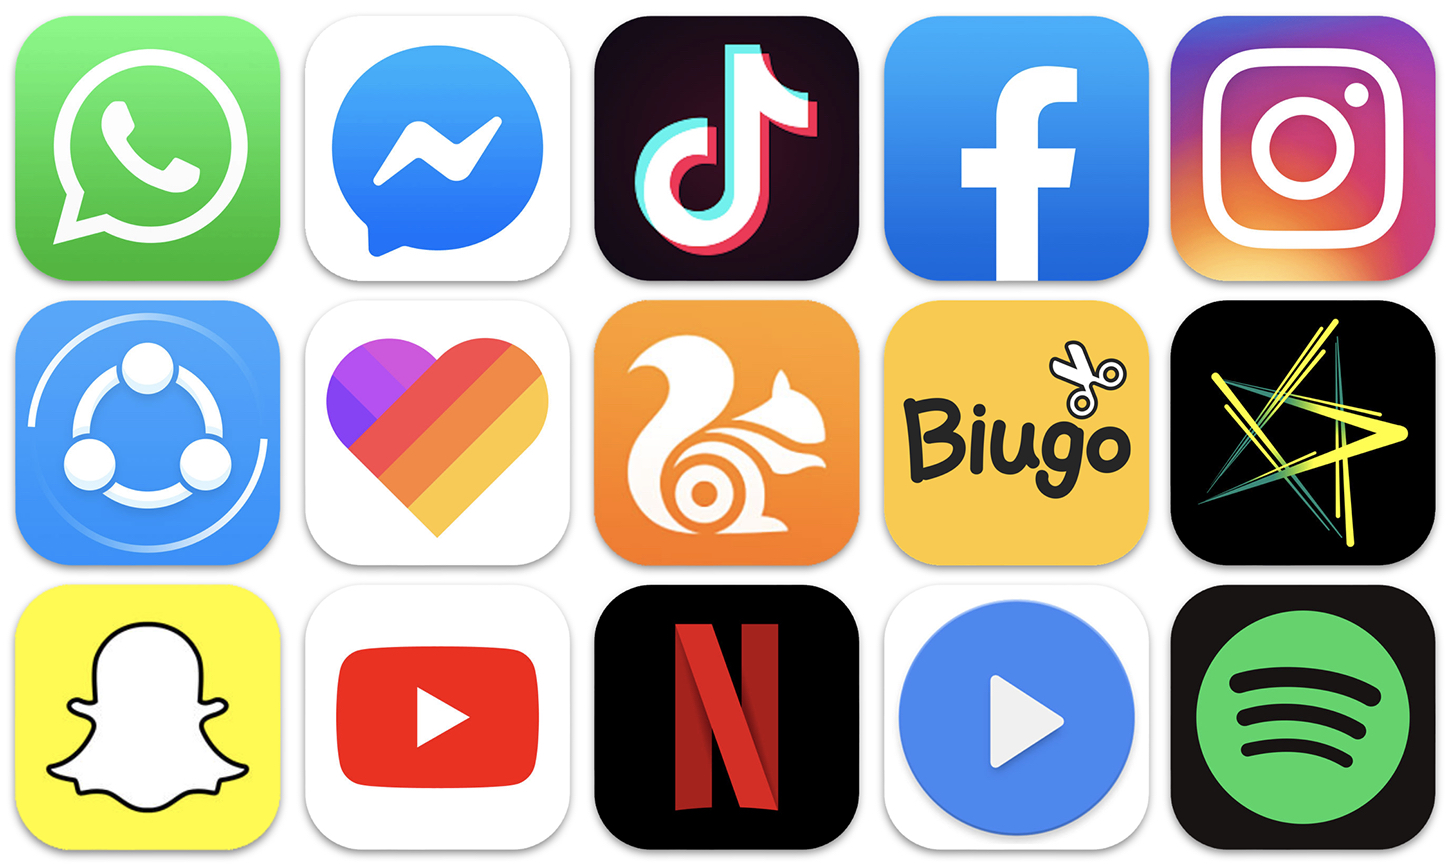 Top Apps Worldwide for Q1 2019 by Downloads.